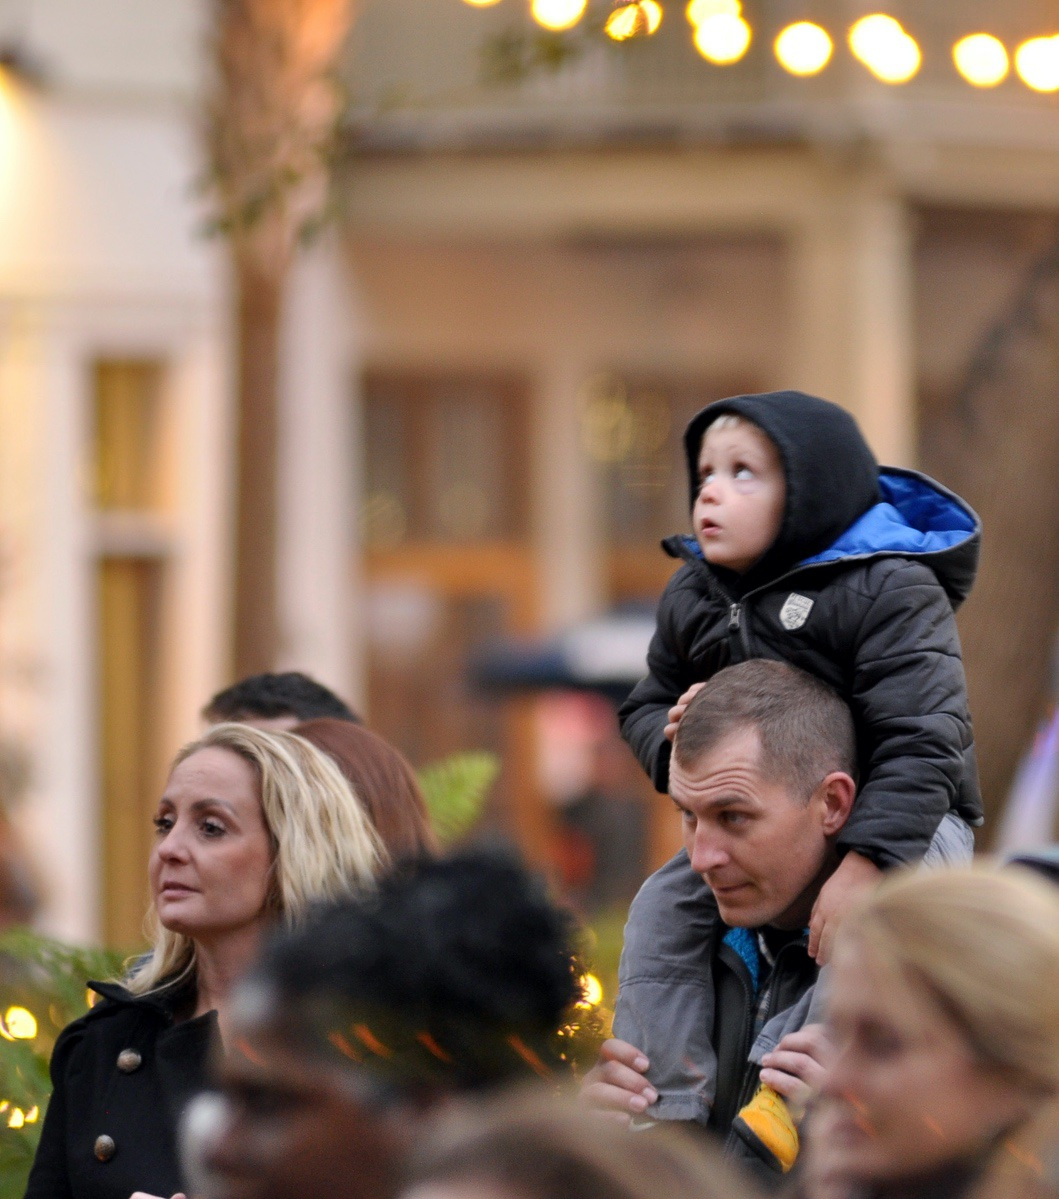 A boy looks up at the lights while sitting on his father's shoulders during the Light Up the Night Family Festival.